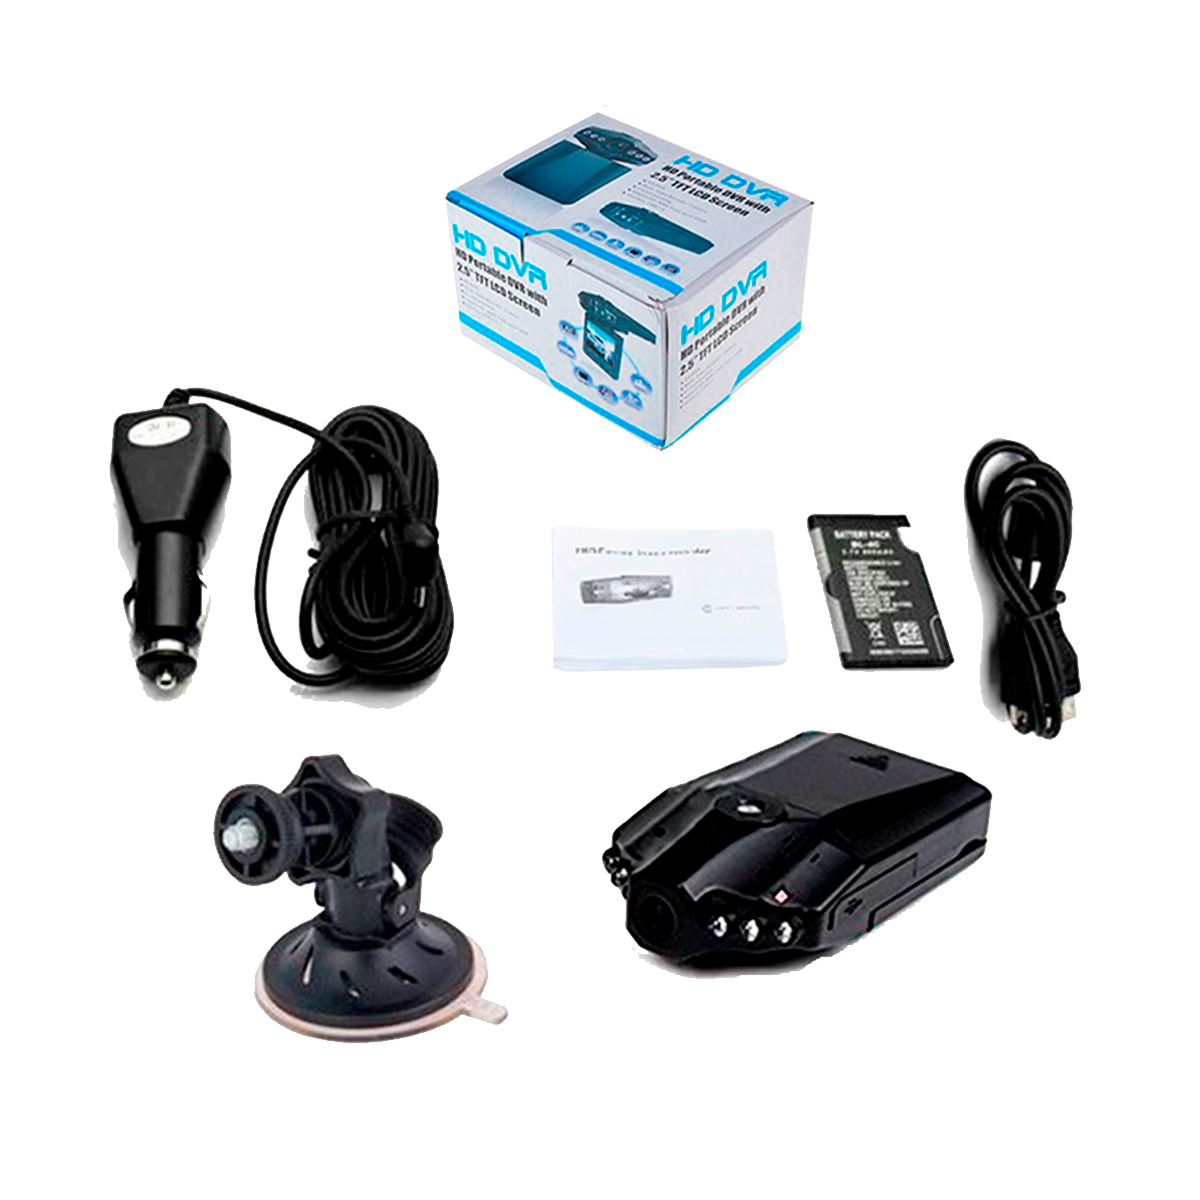 DVR para carro Full HD - Video vigilancia